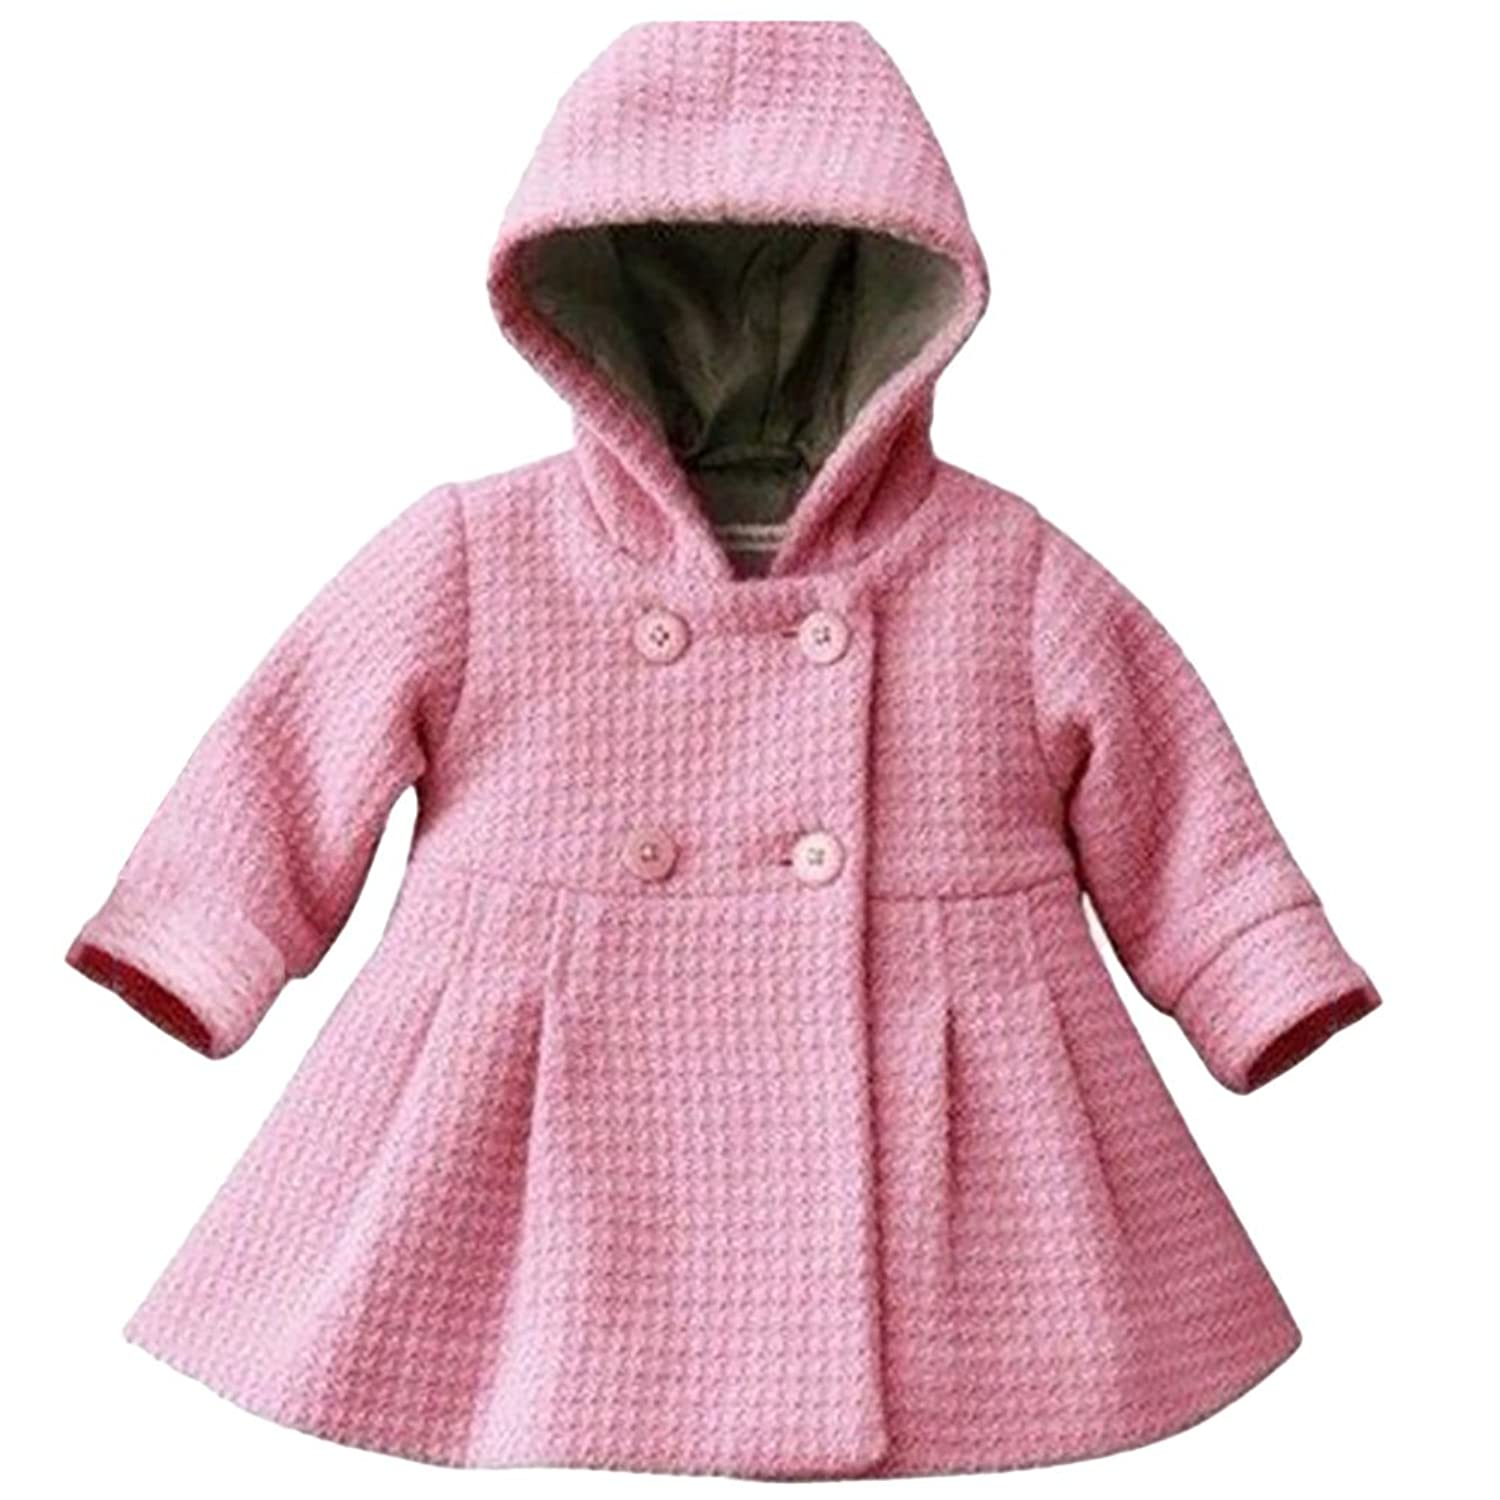 Baby Girls Coat Hat Set Double Breasted Outwear Amazon Clothing